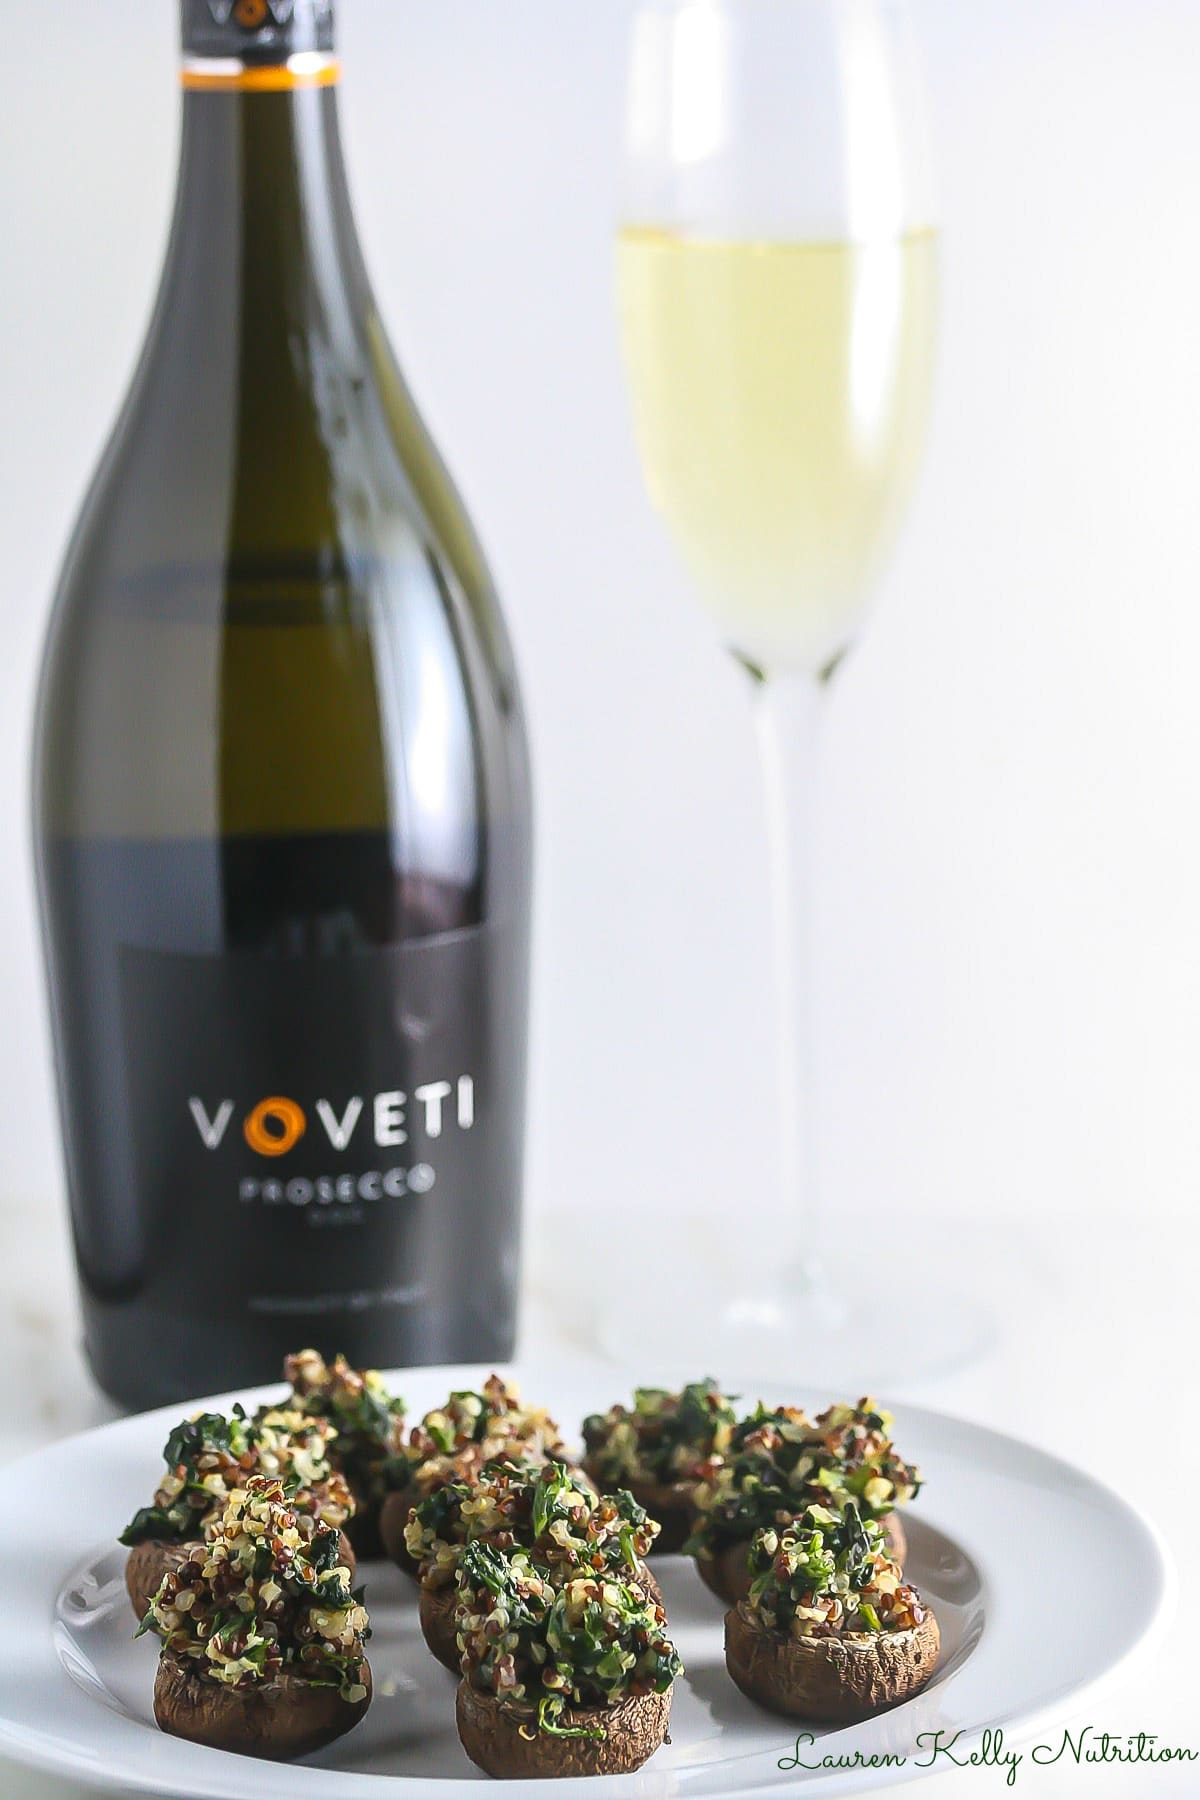 These Quinoa Spinach Stuffed Mushrooms are healthy but still crazy delicious and easy to make! From Lauren Kelly Nutrition #VOVETI #CleverGirls